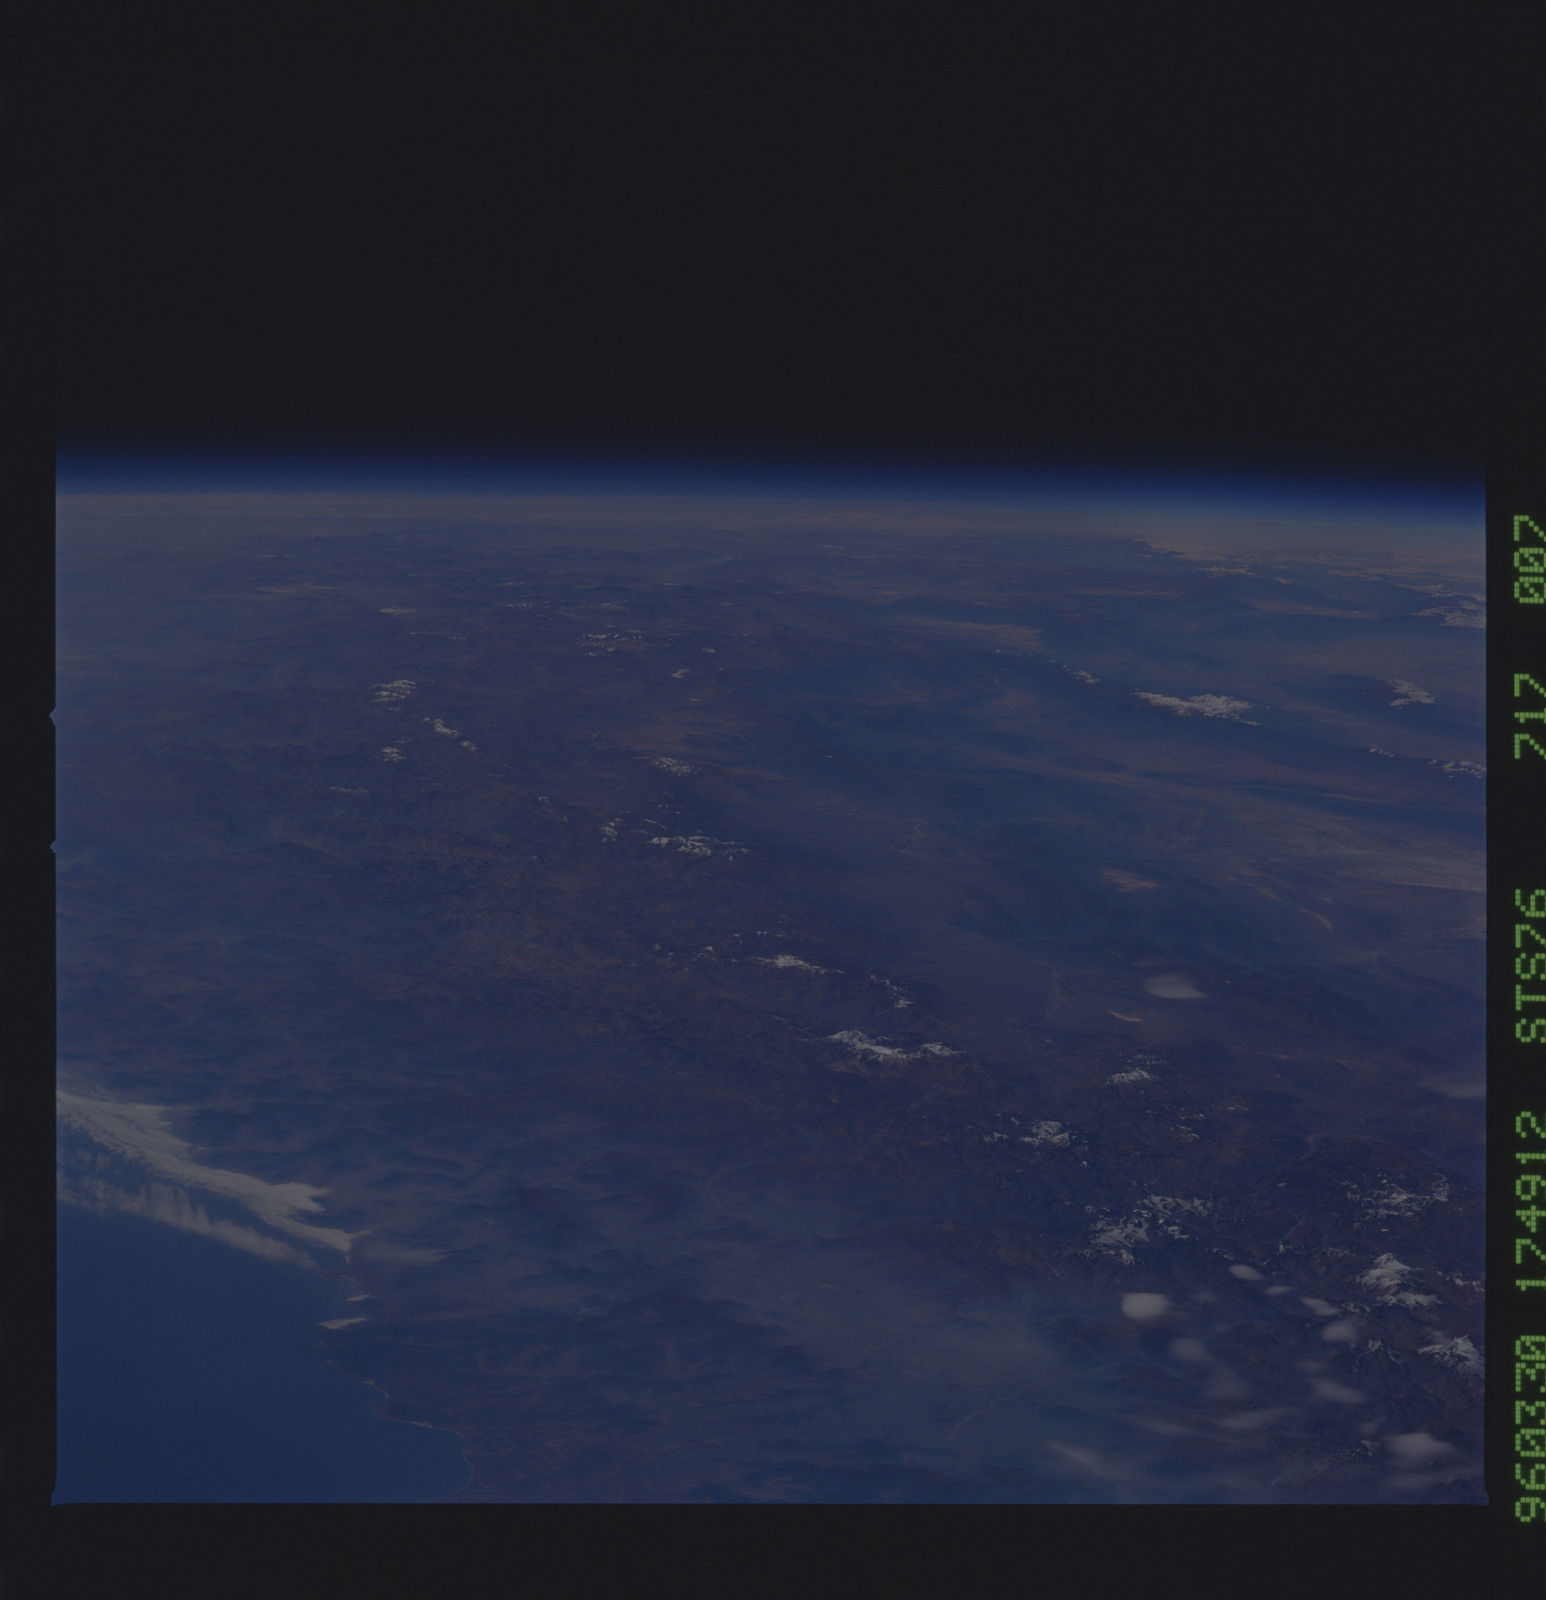 STS076-717-007 - STS-076 - Earth observations taken from shuttle orbiter Atlantis during STS-76 mission